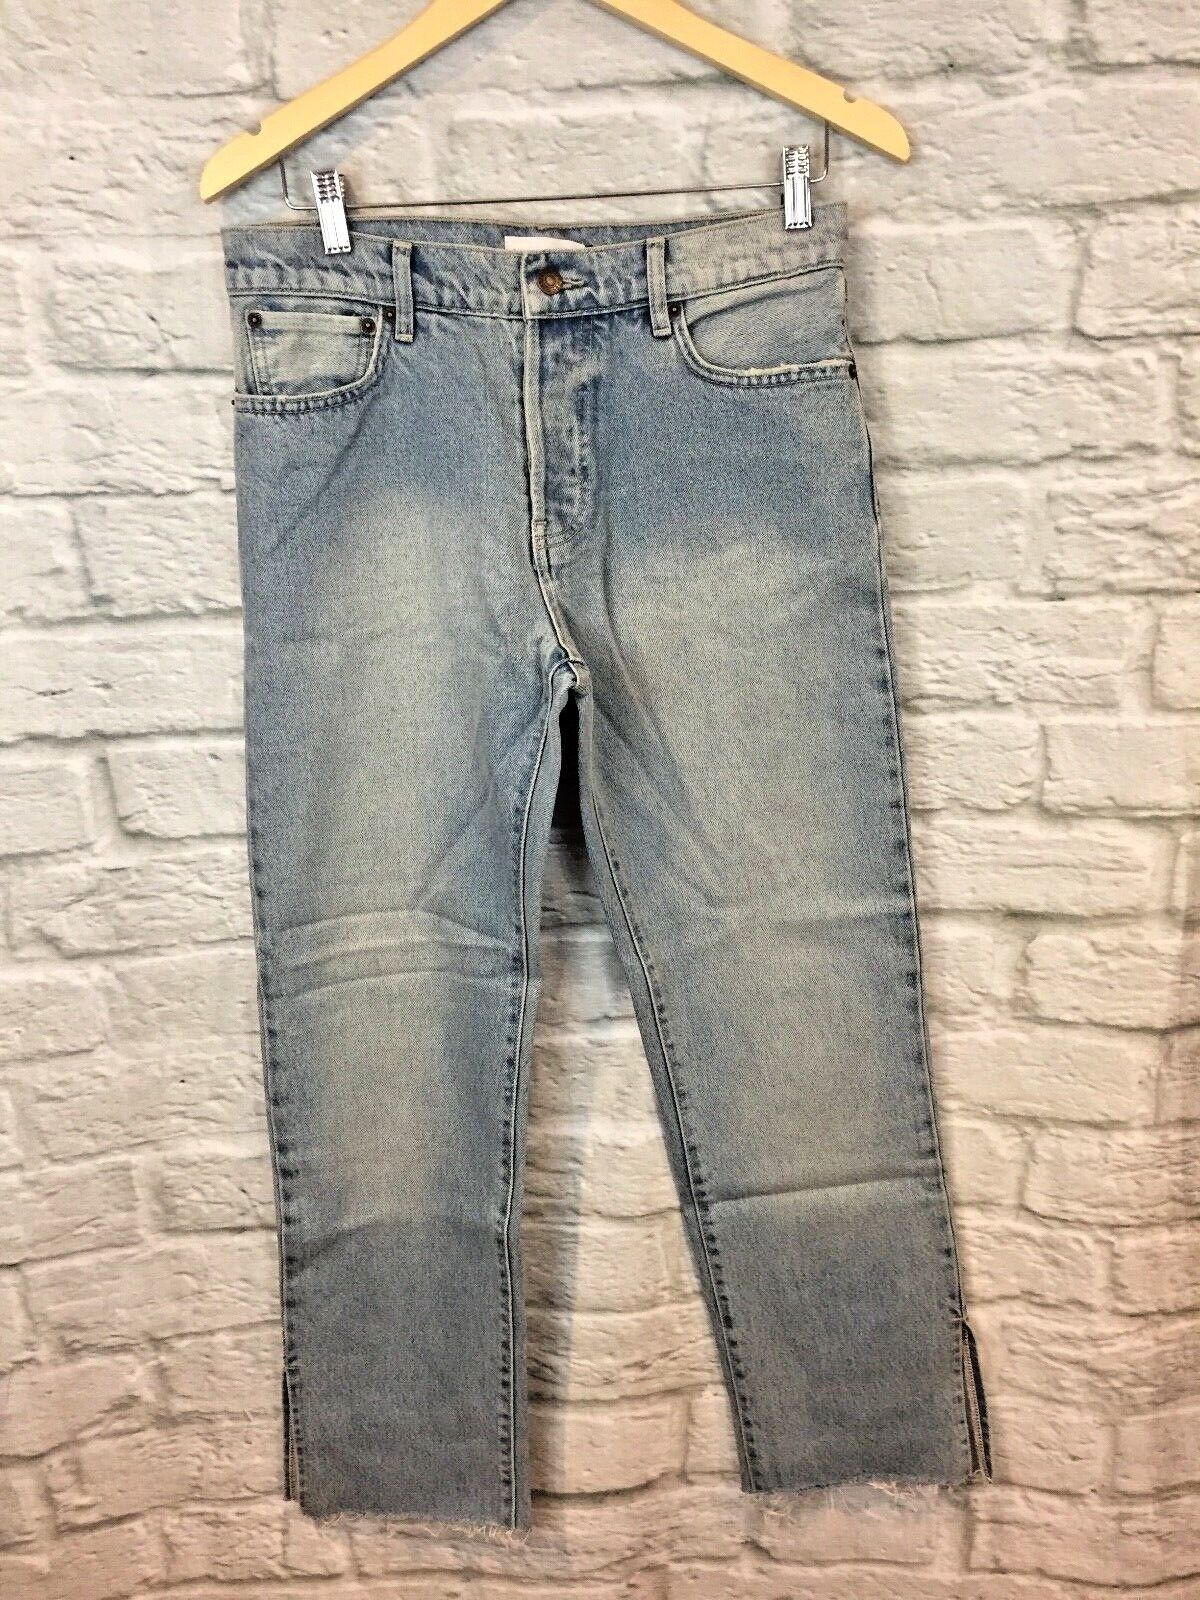 NWT Sincerely Jules High Waist Light Wash Button Fly Raw Hem Jeans Size 27